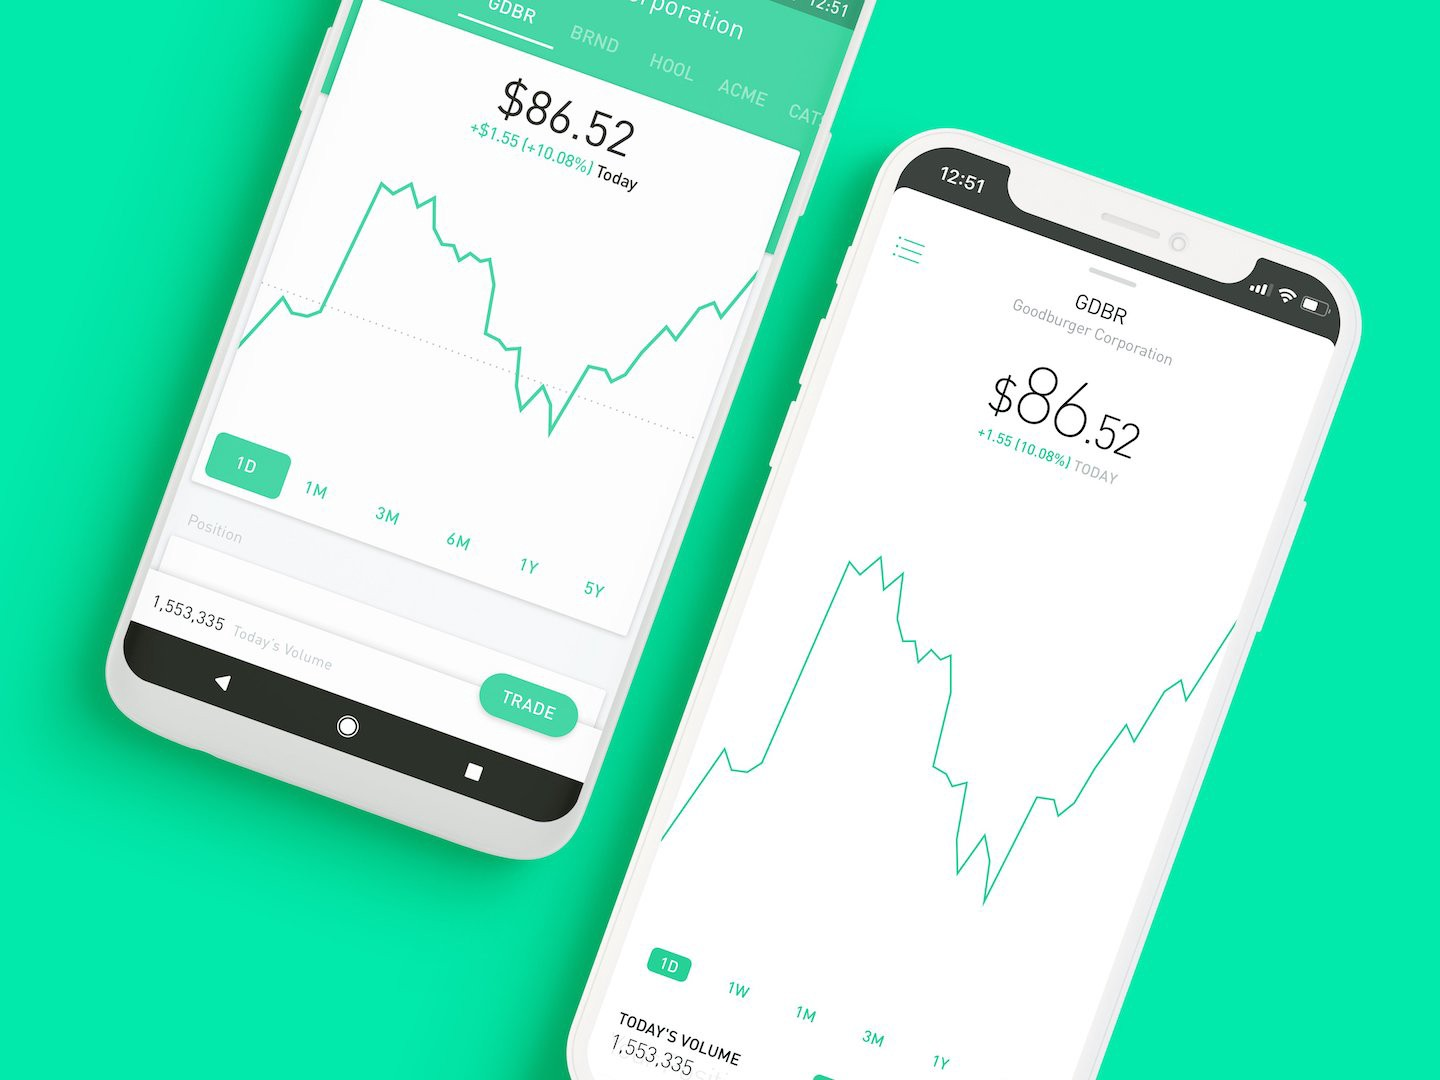 Buying Mutual Funds On Robinhood